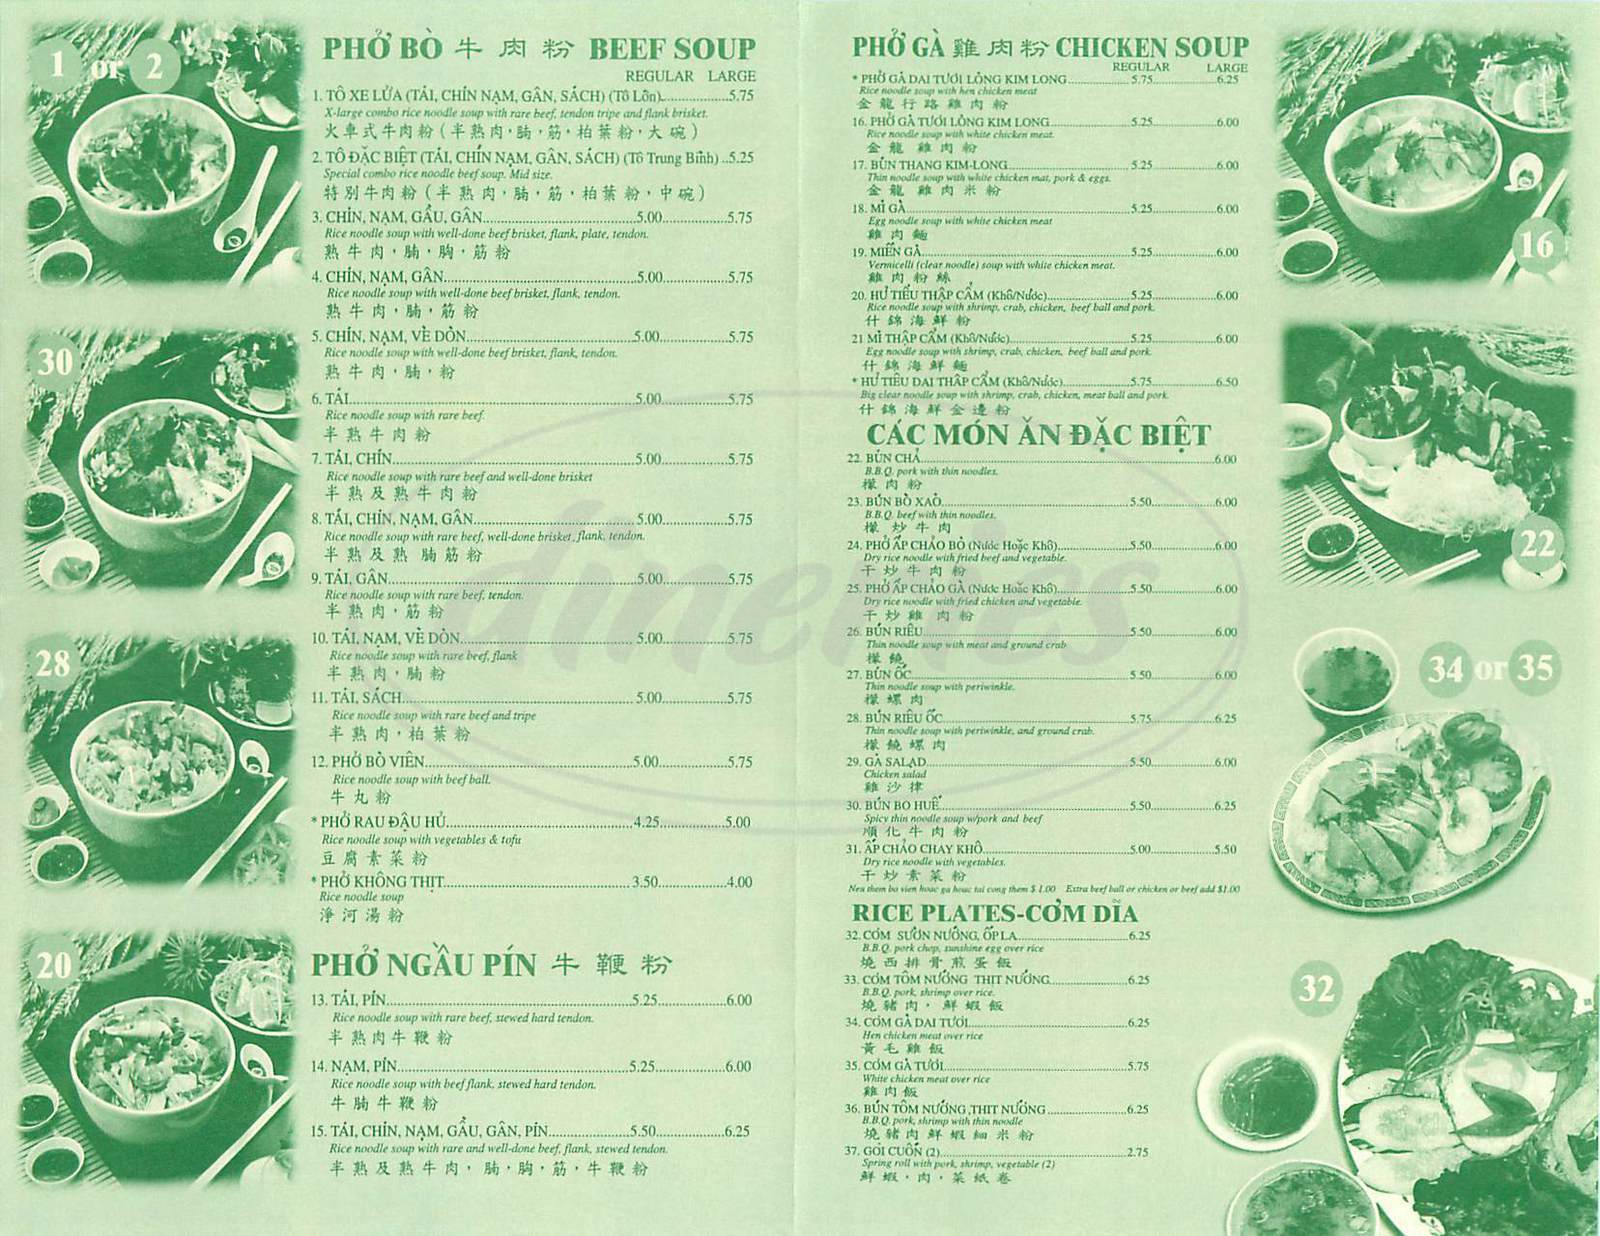 menu for Pho Kim Long